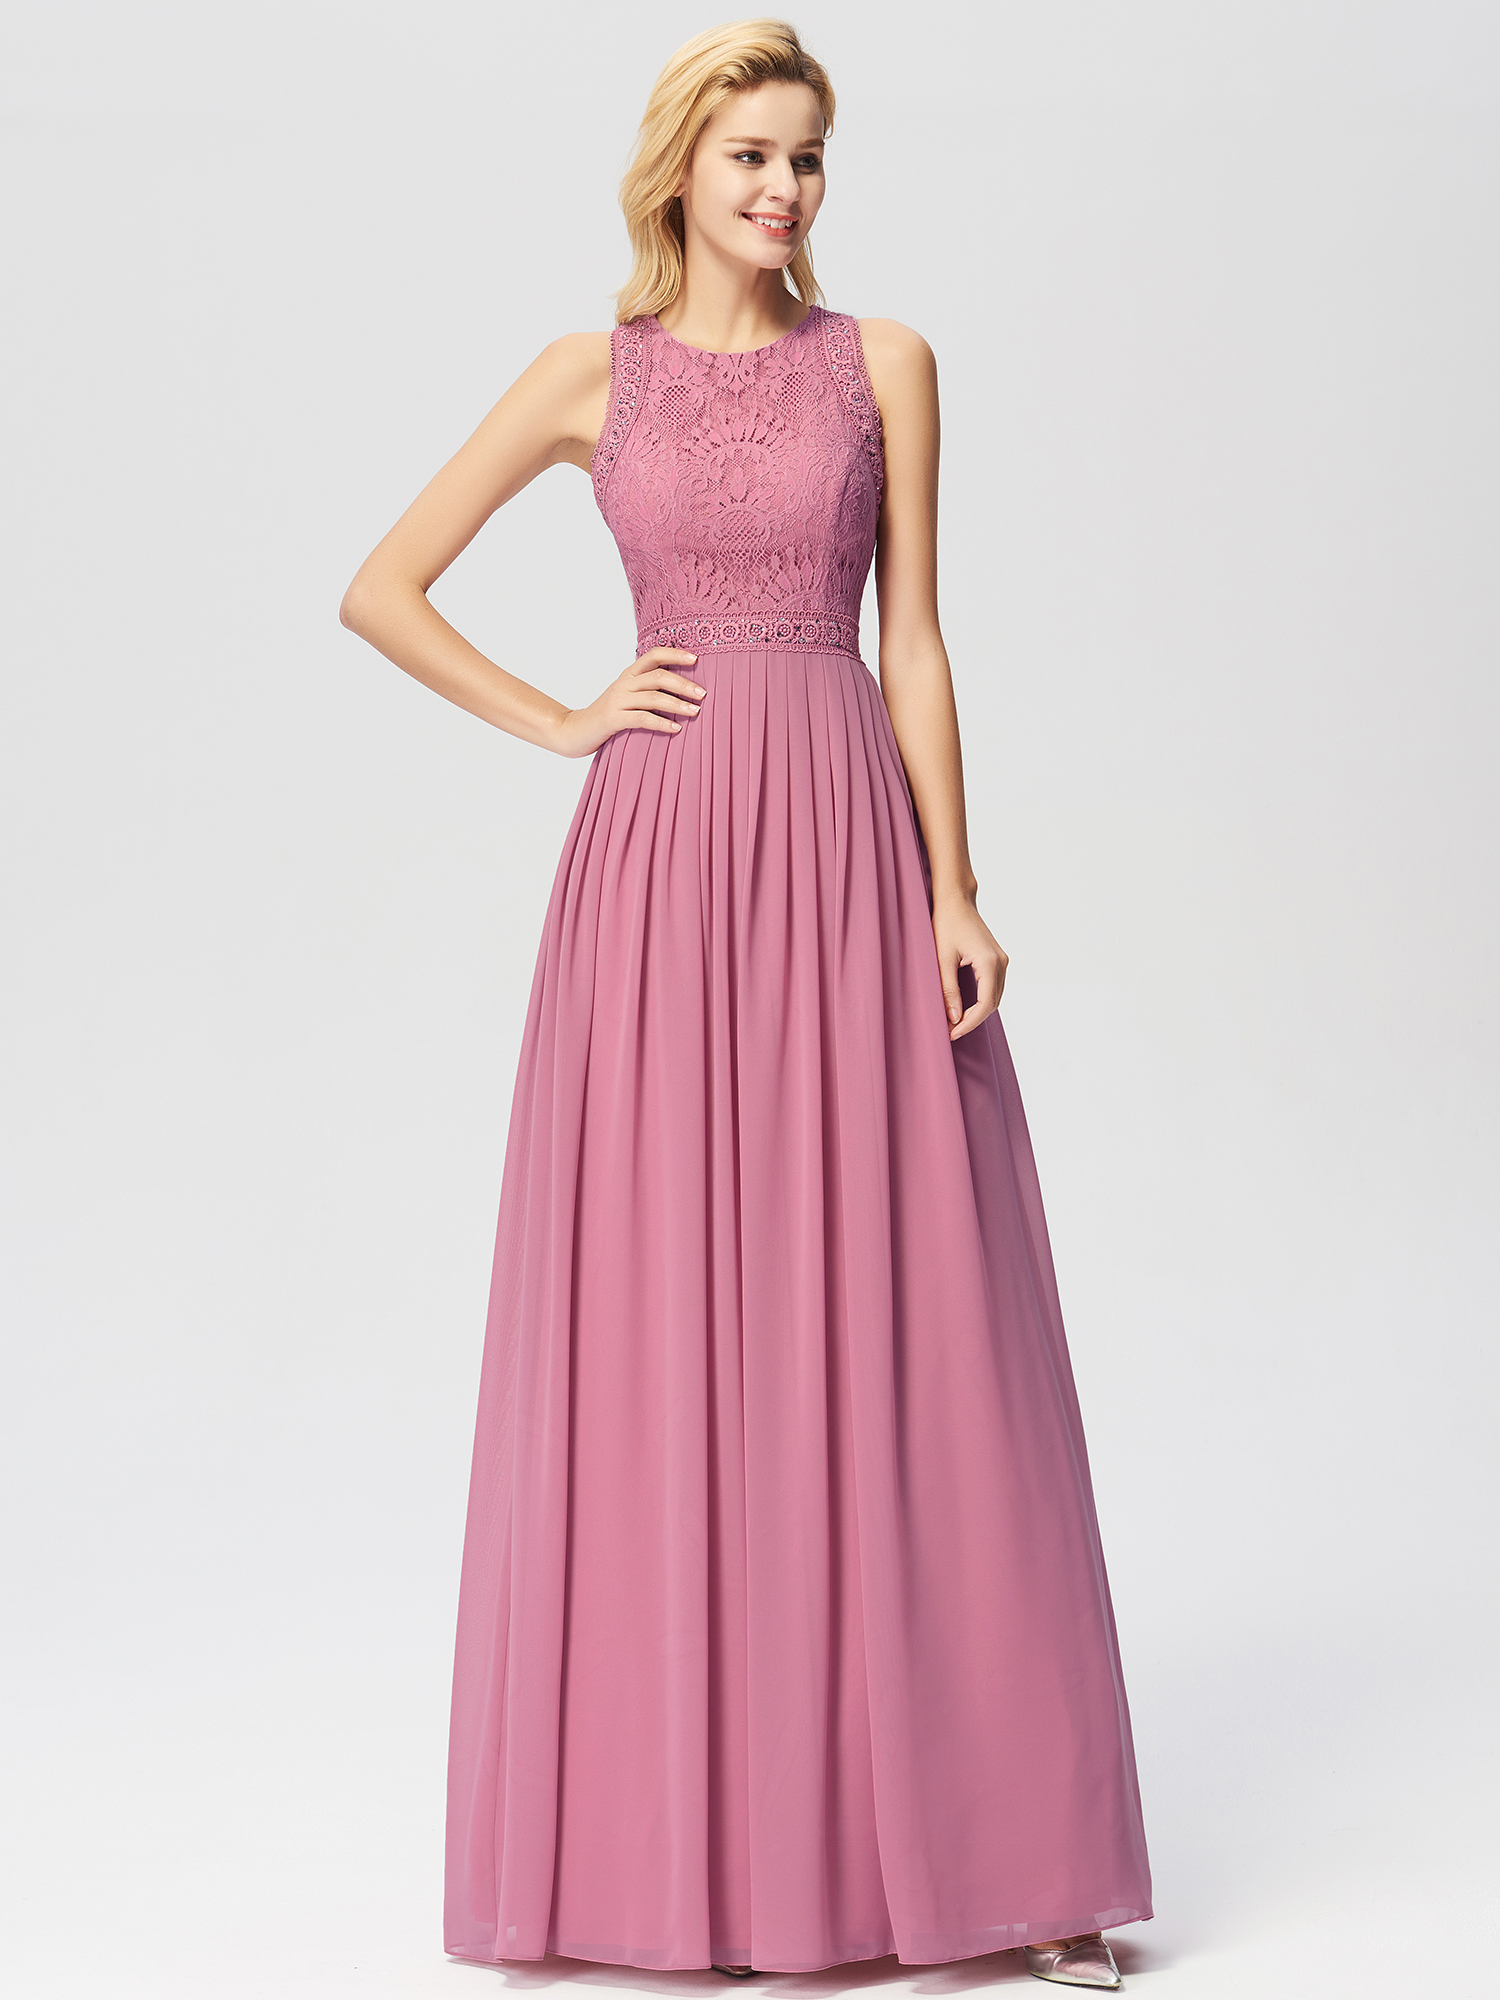 Ever-pretty Lace A-line Evening Dresses Cocktail Prom Bridesmaid Wedding Dresses